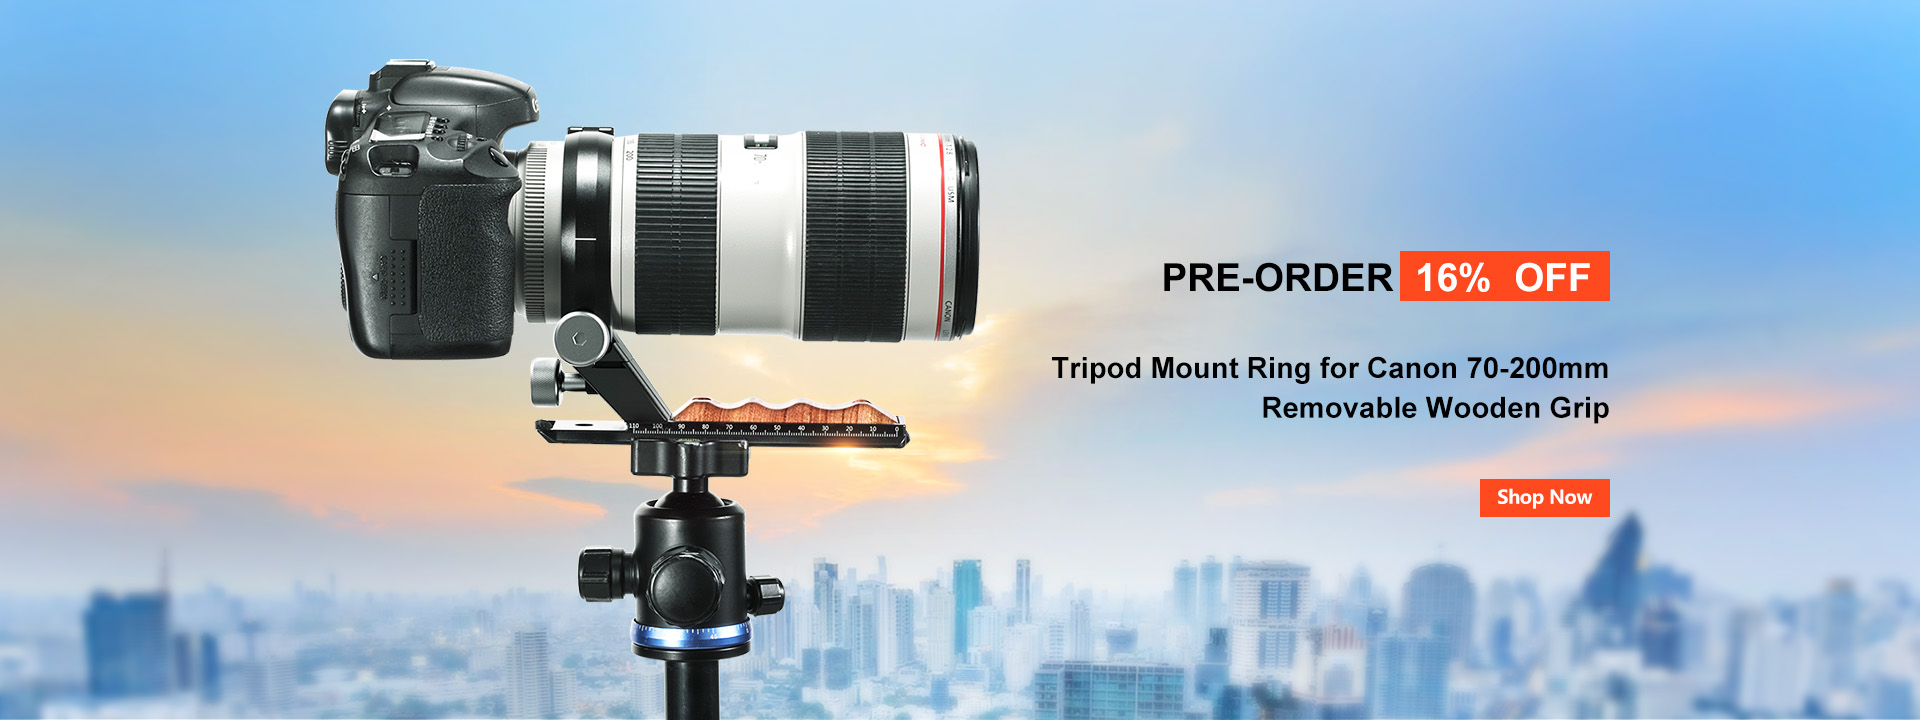 Tripod Mount Ring